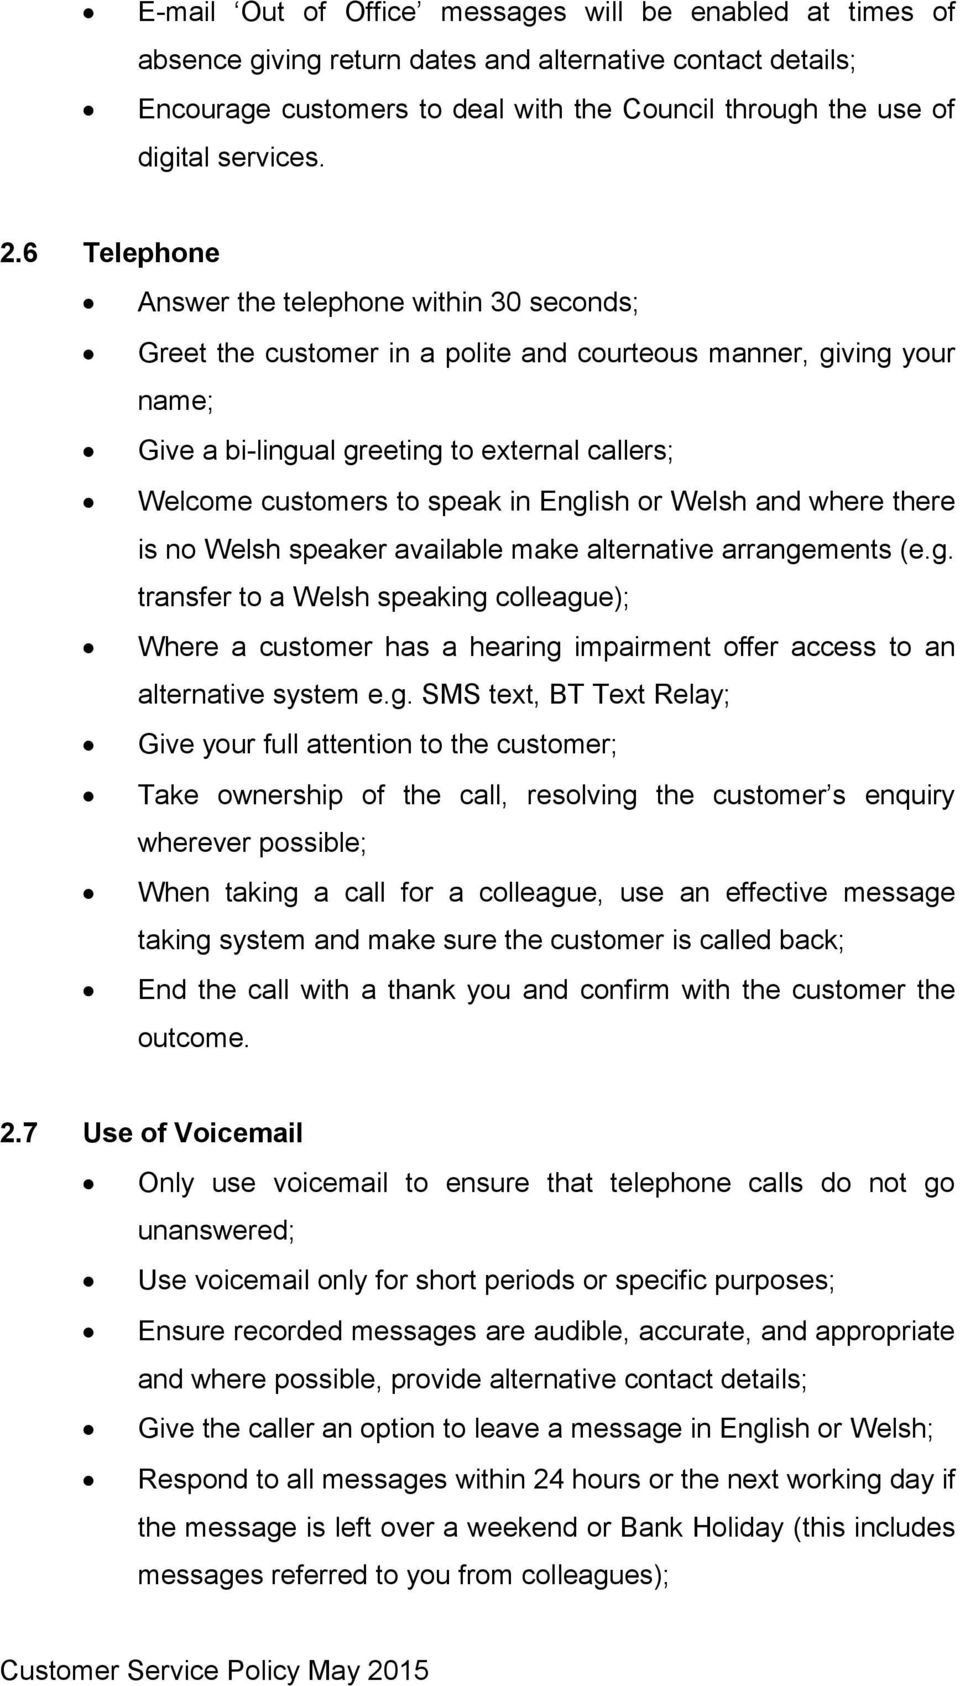 in English or Welsh and where there is no Welsh speaker available make alternative arrangements (e.g. transfer to a Welsh speaking colleague); Where a customer has a hearing impairment offer access to an alternative system e.